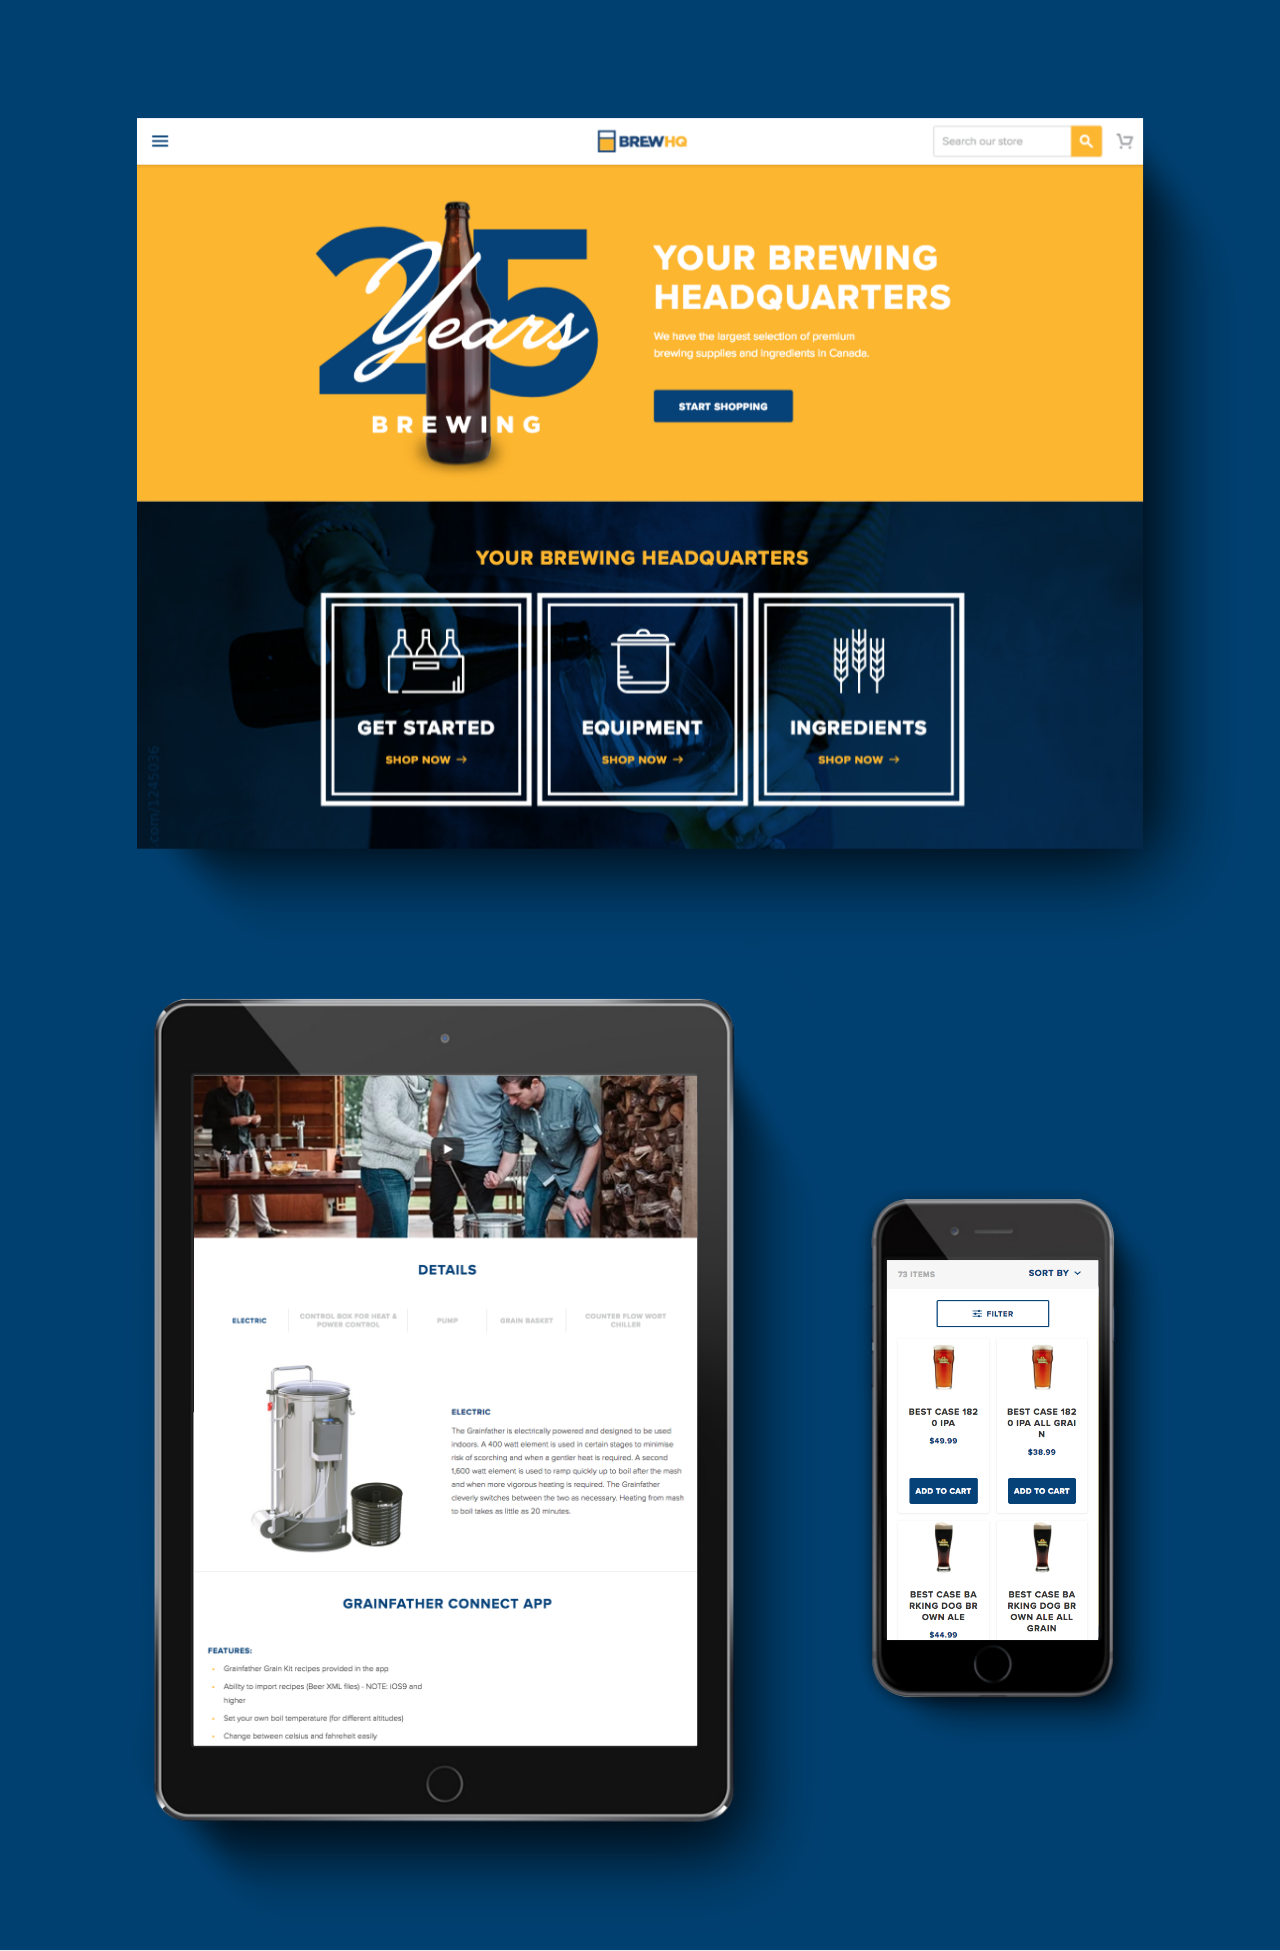 The BrewHQ custom Shopify Plus theme